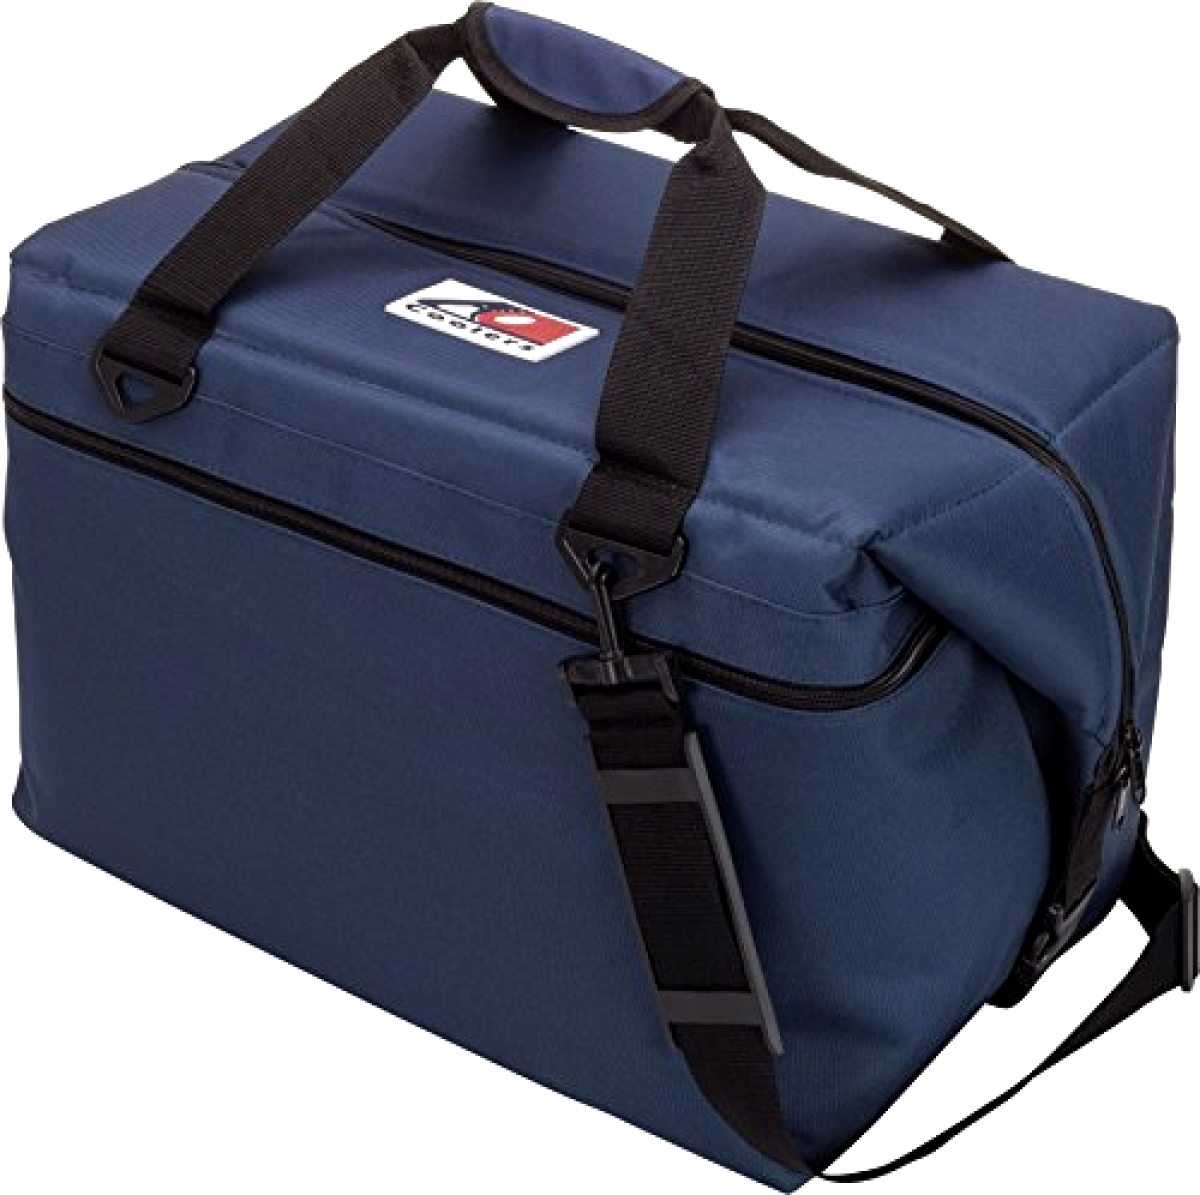 Soft Sided Cooler Canvas with High-Density Insulation, Navy Blau, 24-Can, New